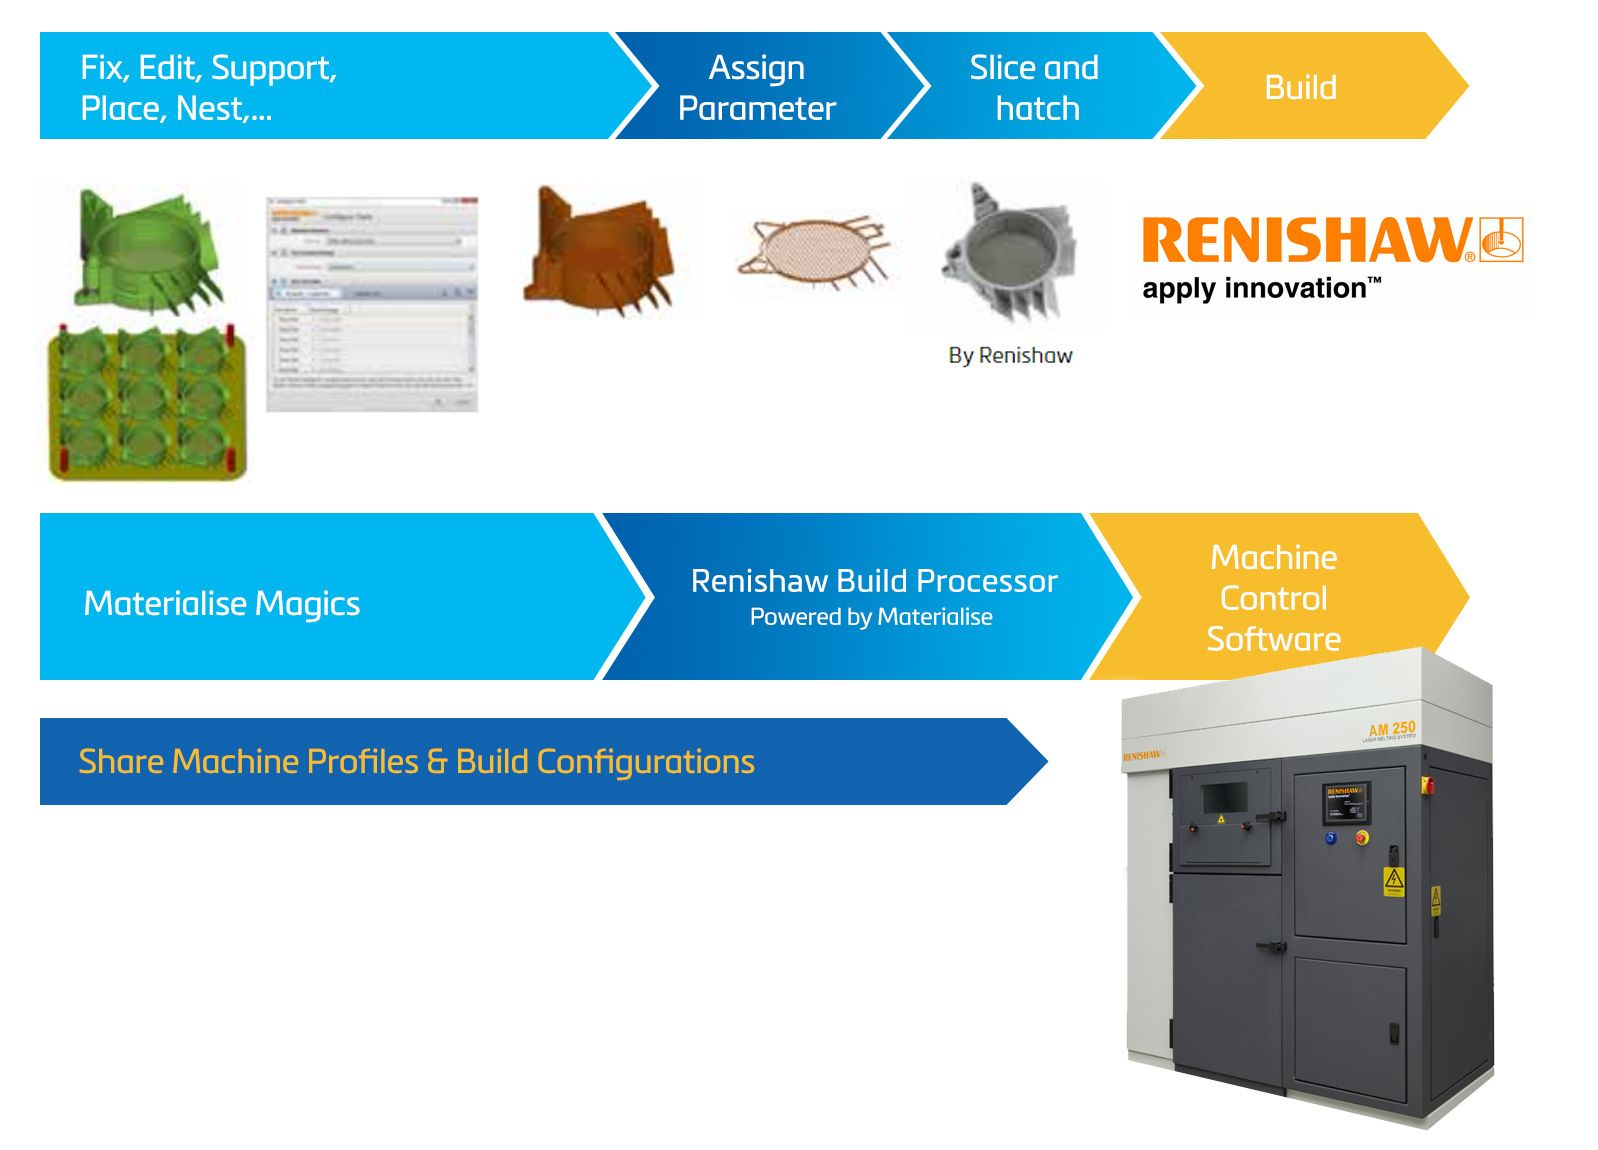 Renishaw Build Processor